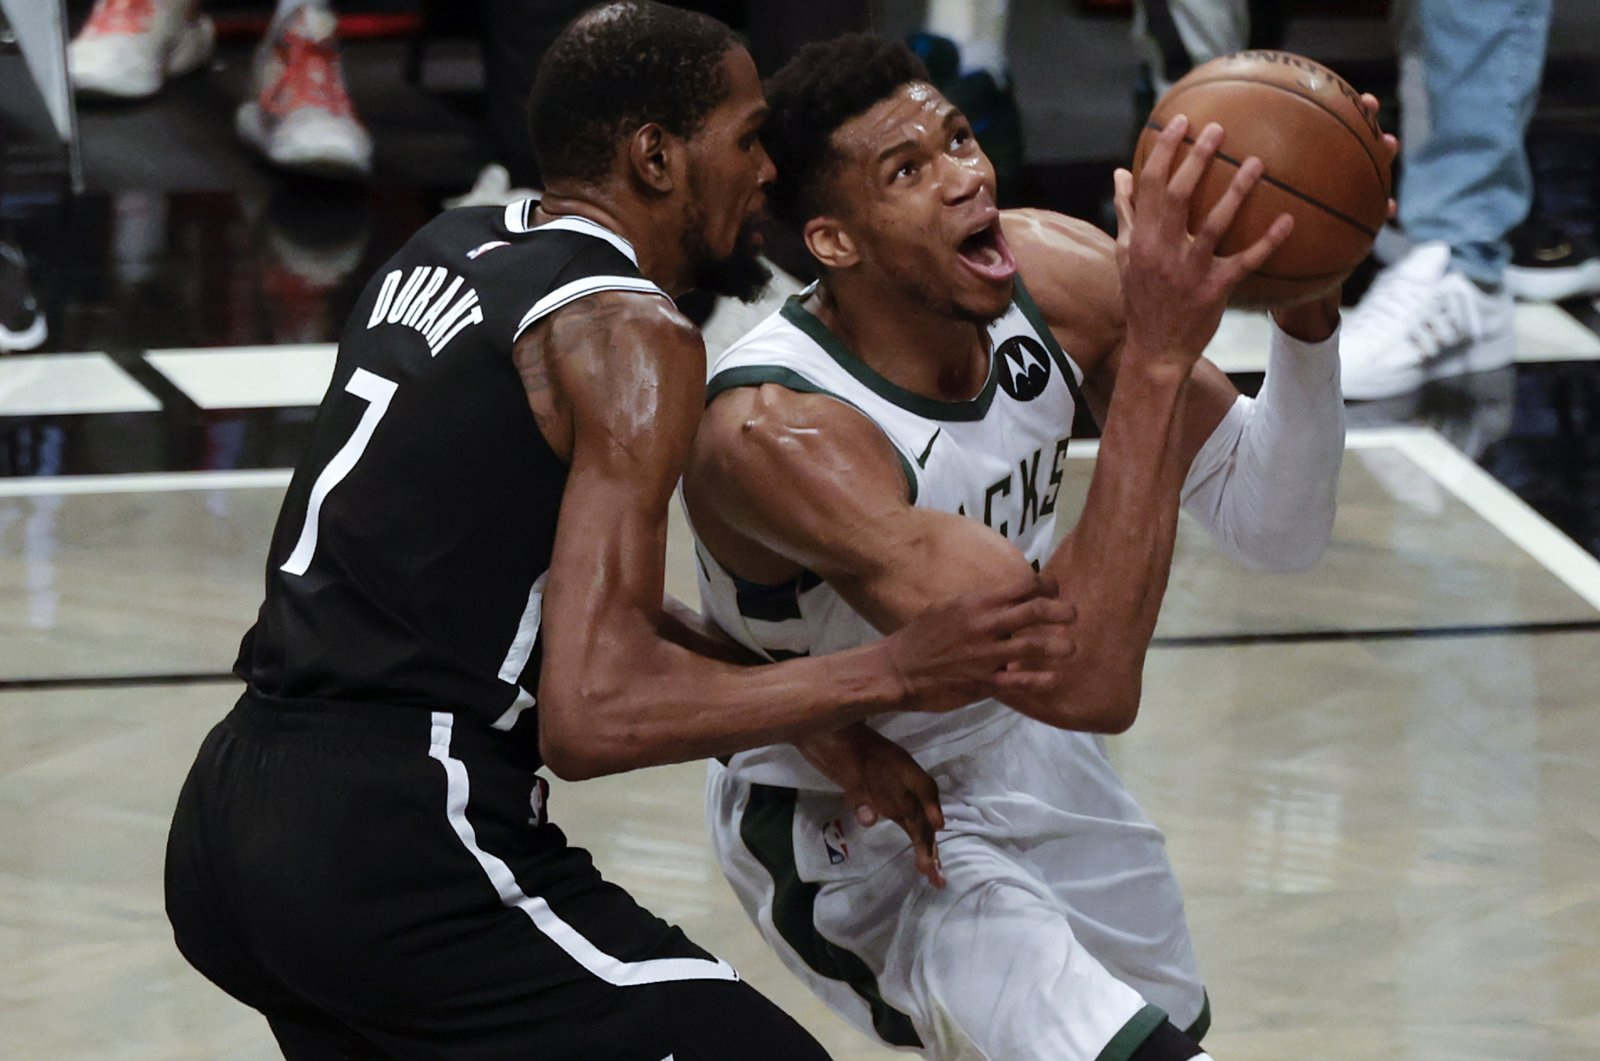 Milwaukee Bucks forward Giannis Antetokounmpo (R) looks to put up a shot past a defending Brooklyn Nets forward Kevin Durant (L) in the second half of Game 7 of the 2021 NBA Eastern Conference semifinals at the Barclays Center, Brooklyn, New York, U.S., June 19, 2021. (EPA Photo)